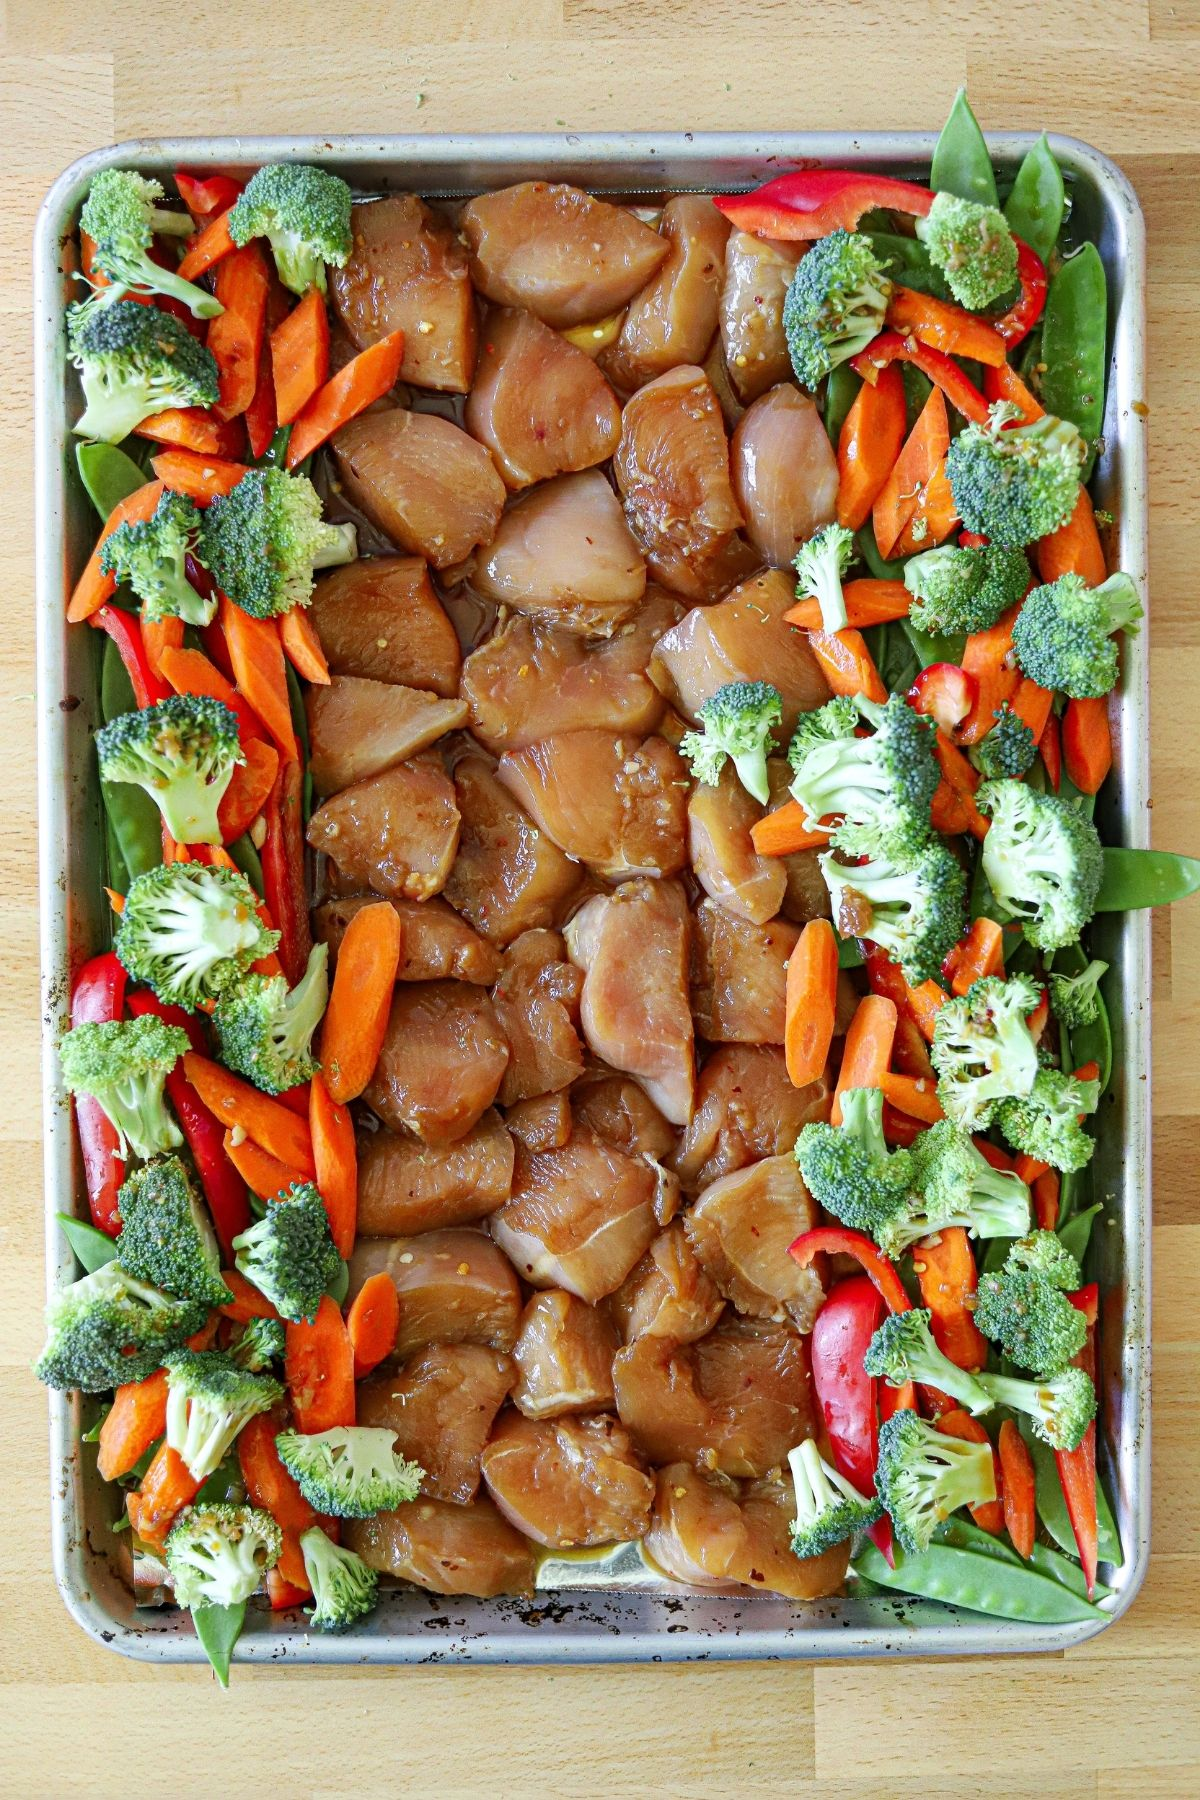 marinated chicken on a sheet pan surrounded by broccoli, carrots, red pepper, and snow peas.